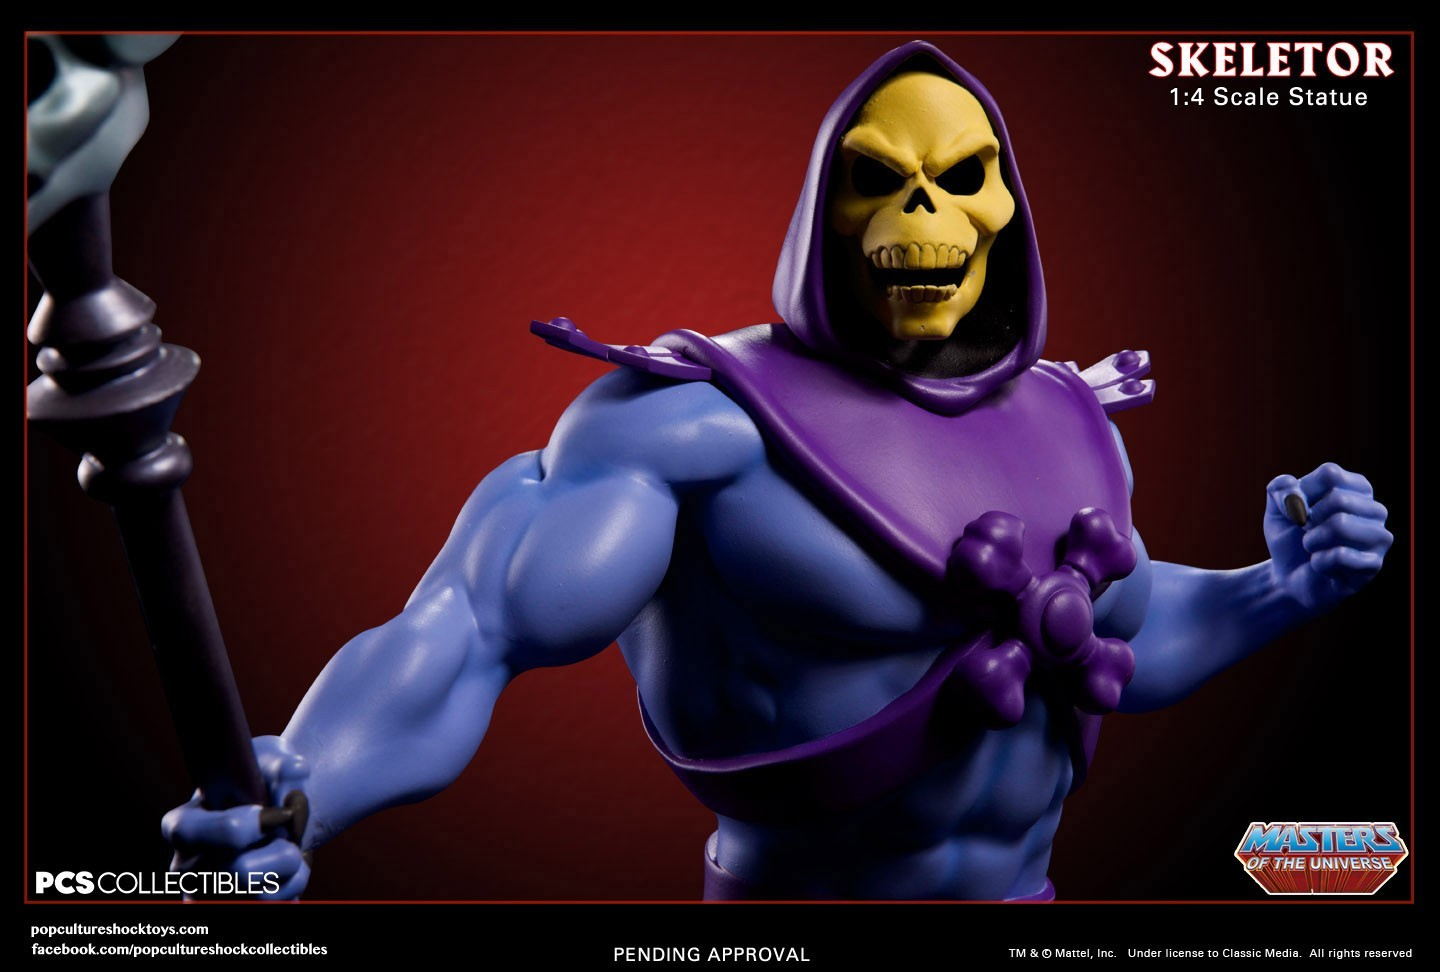 Alejandro pereira skeletor media r 1